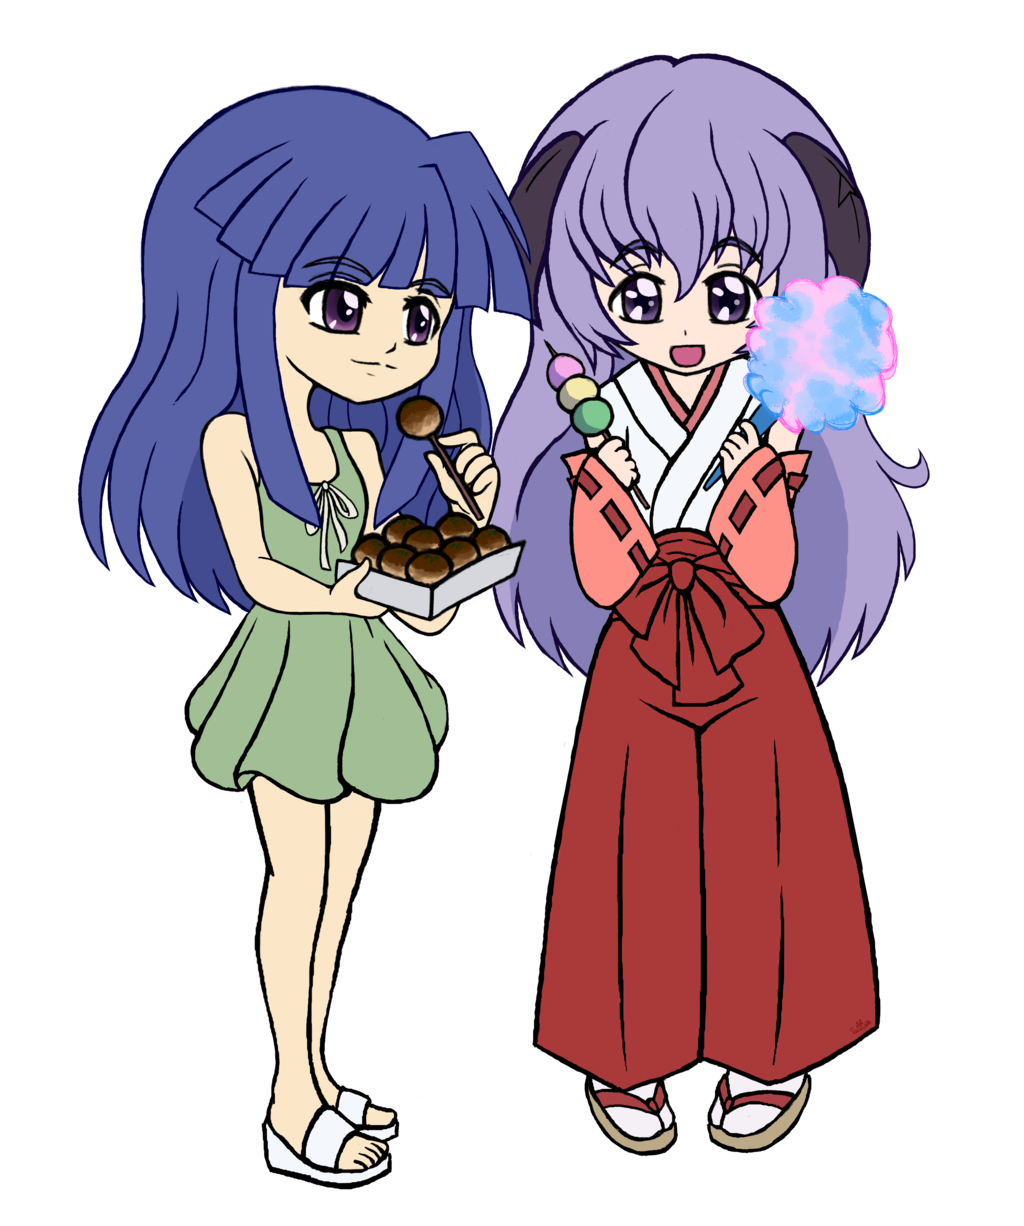 Rika and Hanyuu